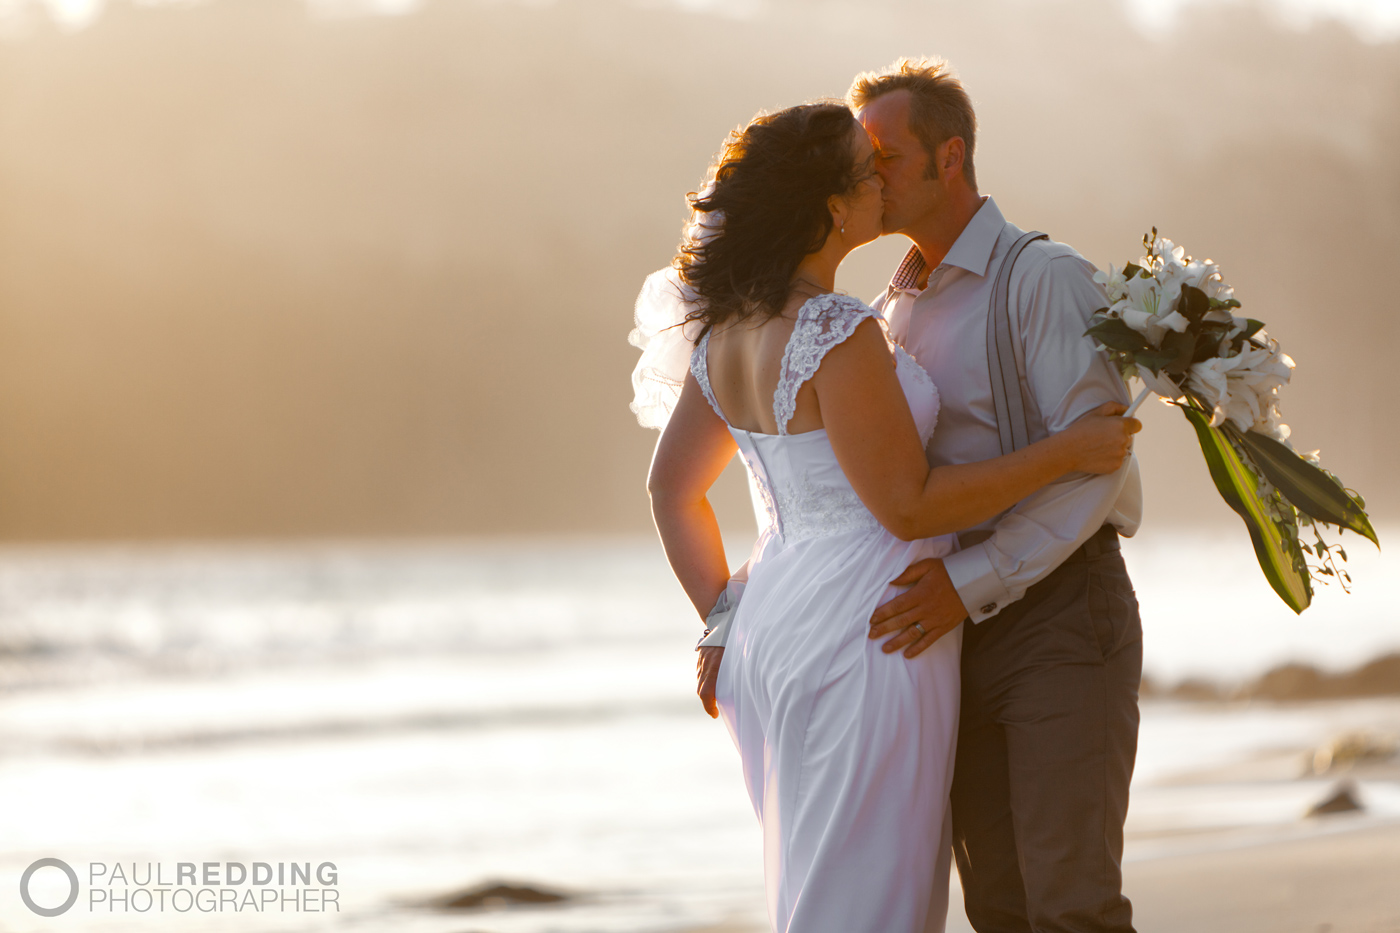 Wedding photography at Roaring Beach- Dover Tasmania - by Huon Valley and Hobart Tasmania wedding photographer, Paul Redding